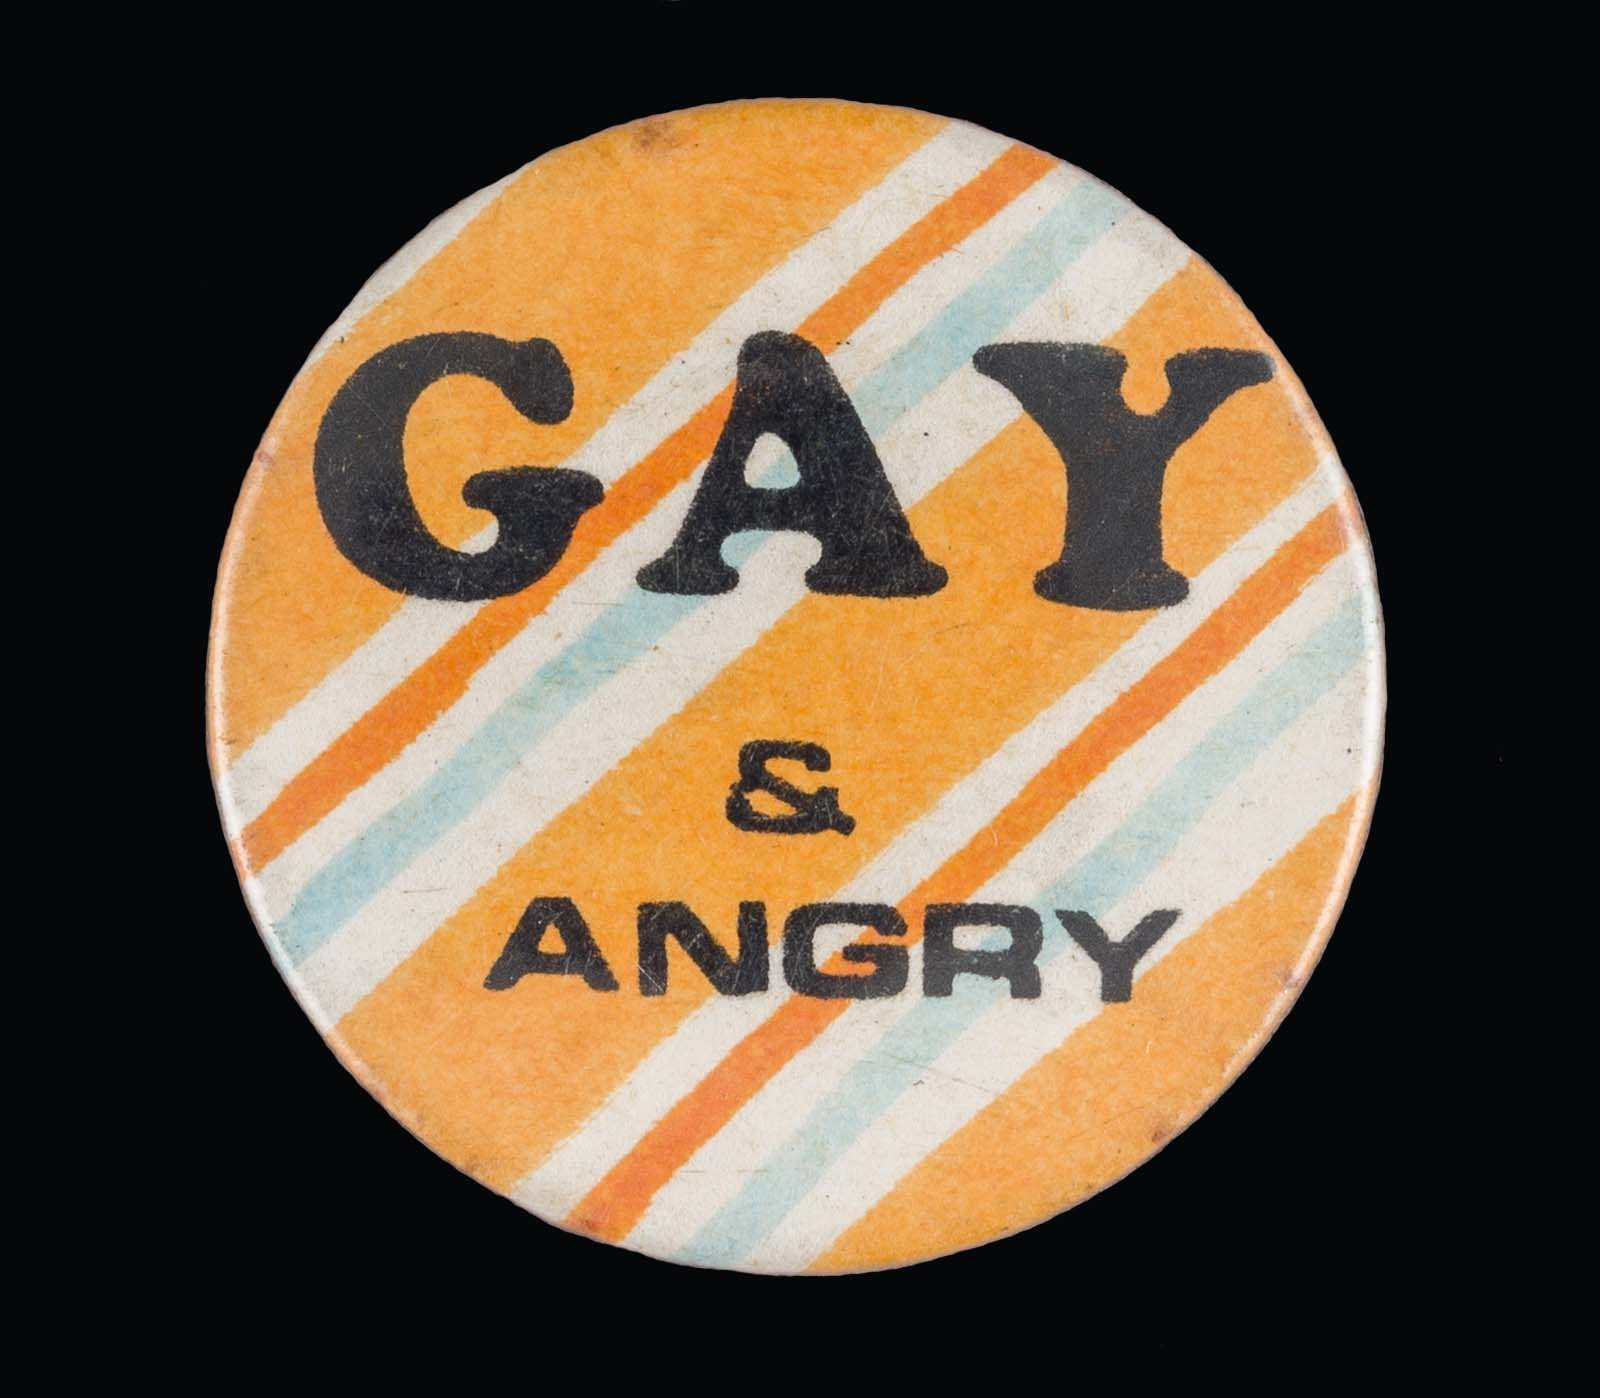 yellow and gray striped badge with the words Gay and Angry